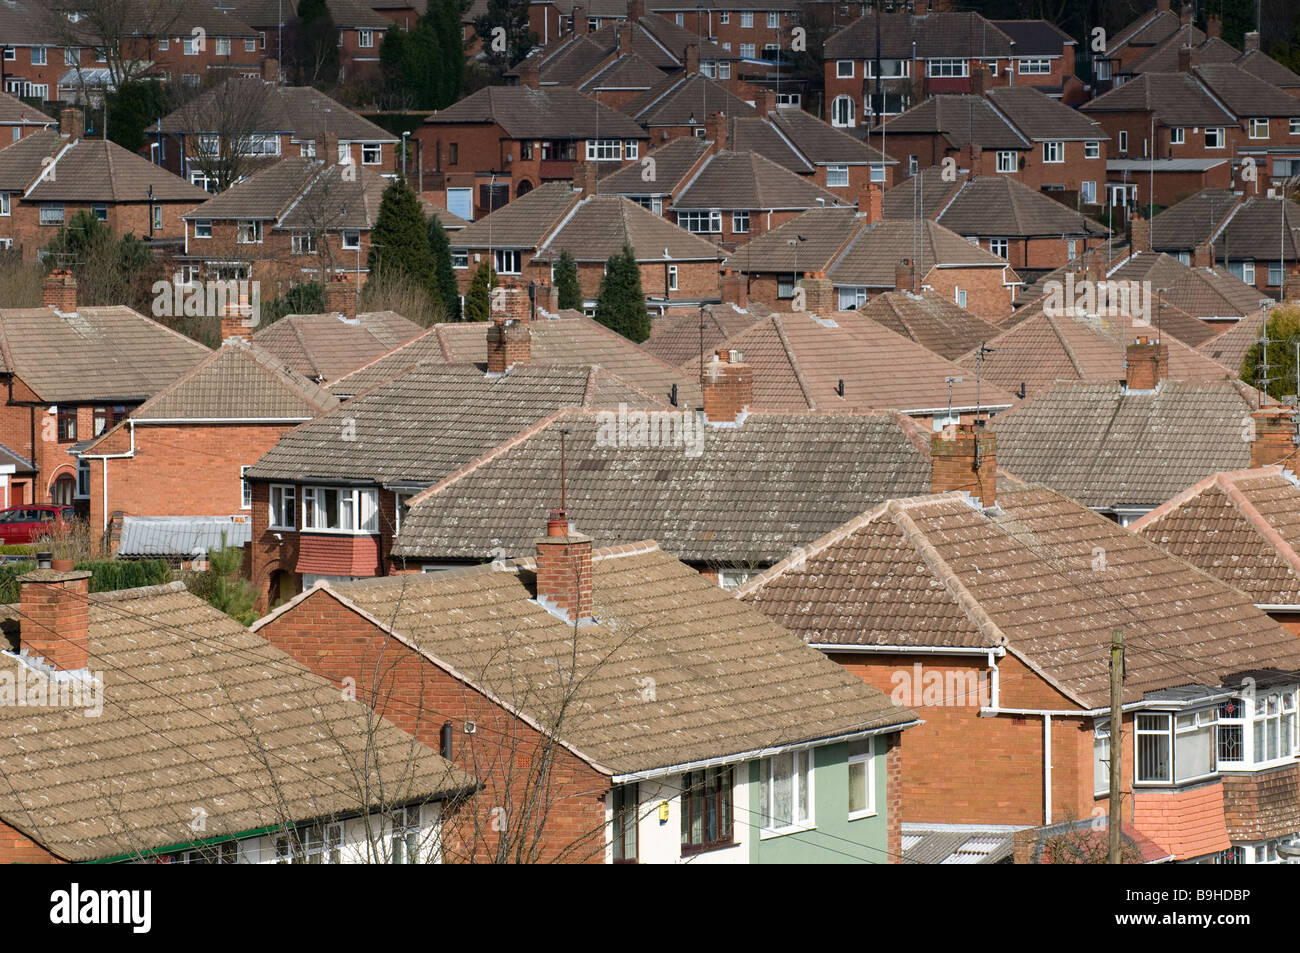 A view of suburban houses and rooftops in the West Midlands England UK. & A view of suburban houses and rooftops in the West Midlands ... memphite.com